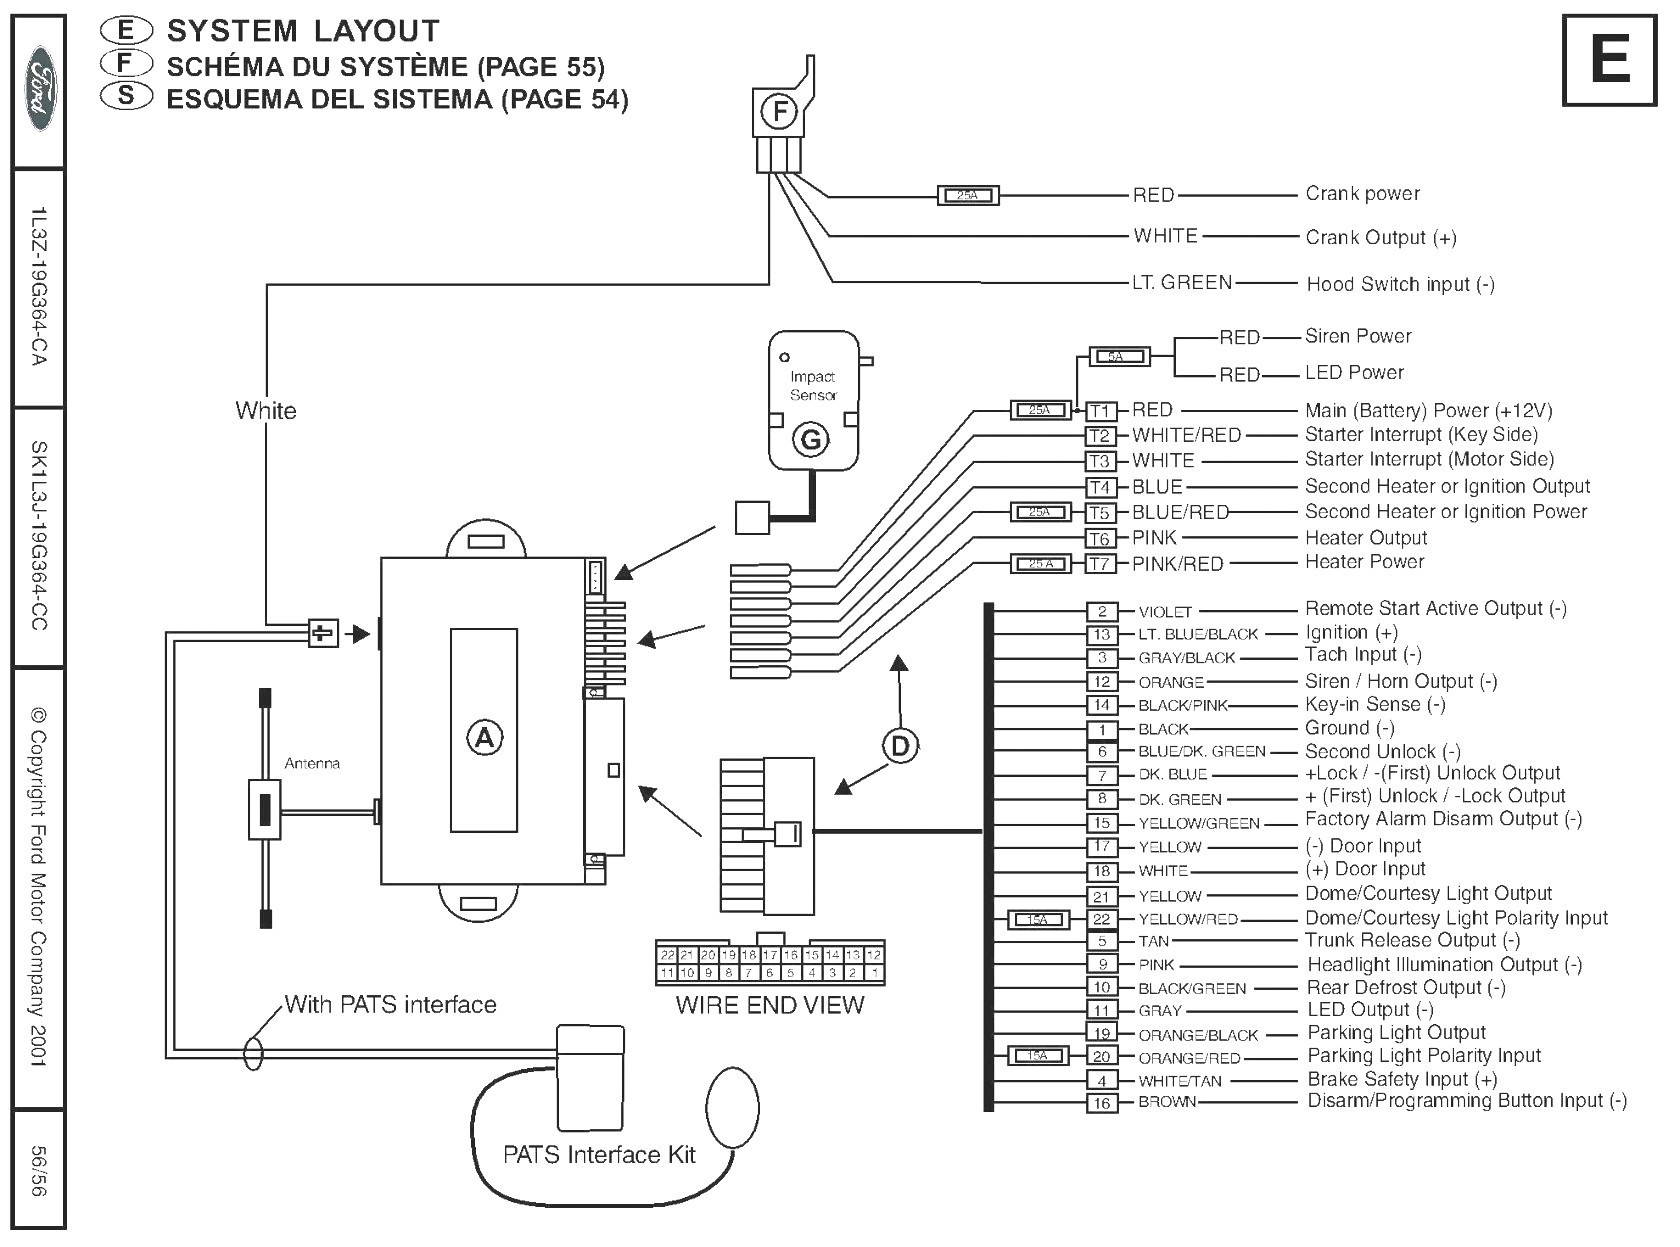 vita spa l200 wiring diagram Download-spa wiring diagram likewise 2004 ski doo mxz 600 wiring diagram rh dododeli co 2-m